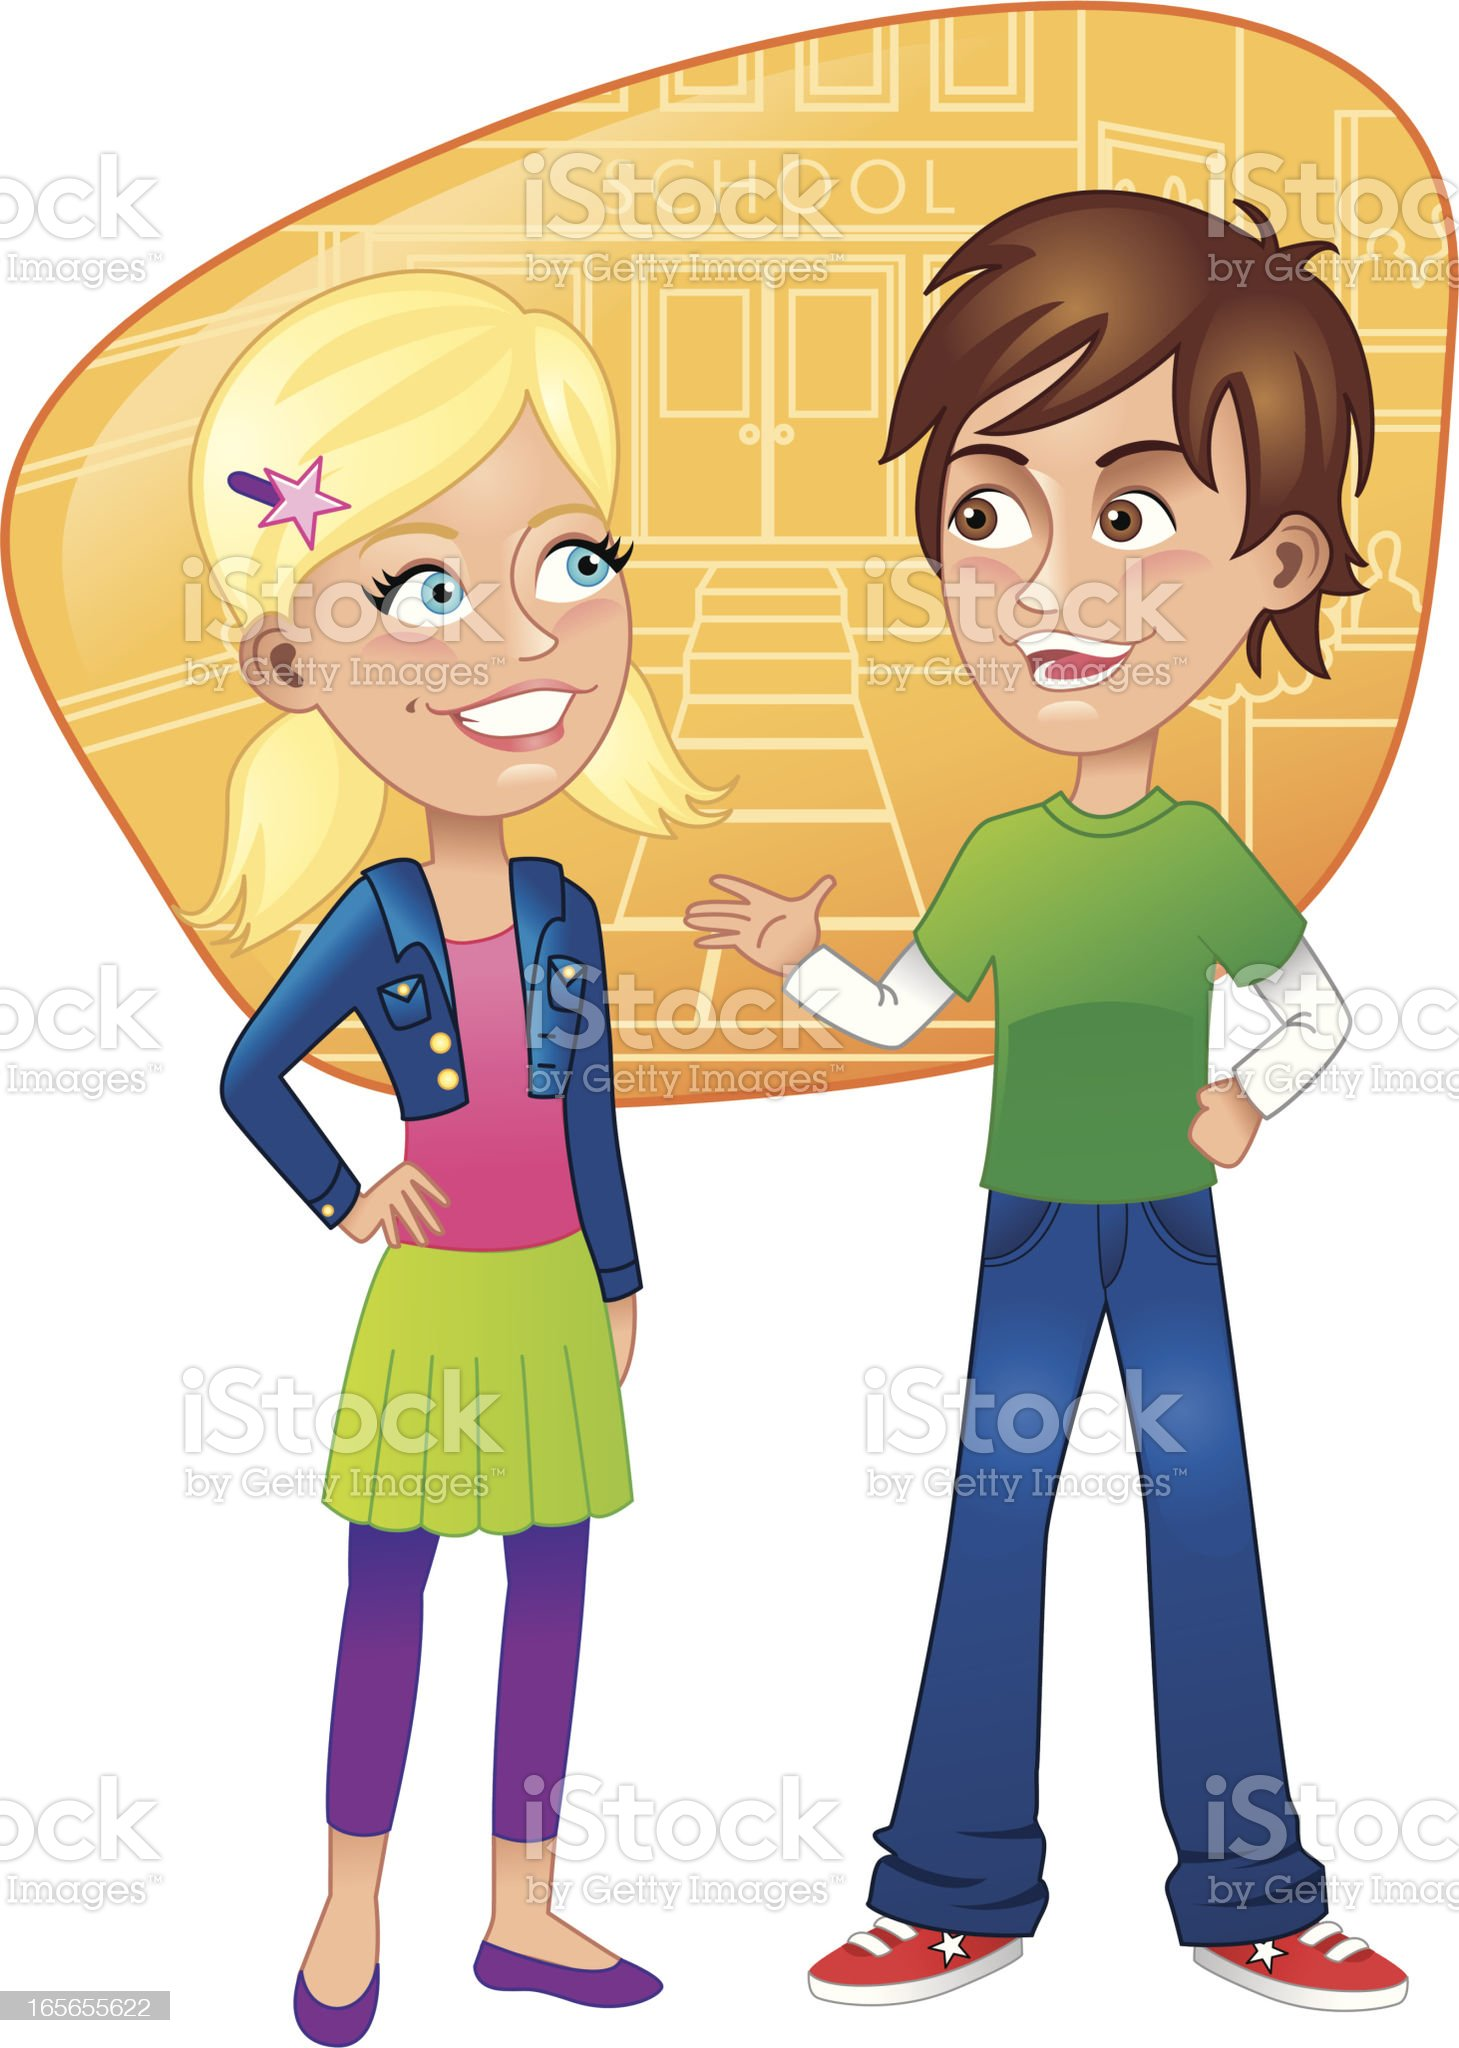 Young boy and girl talking with school background royalty-free stock vector art